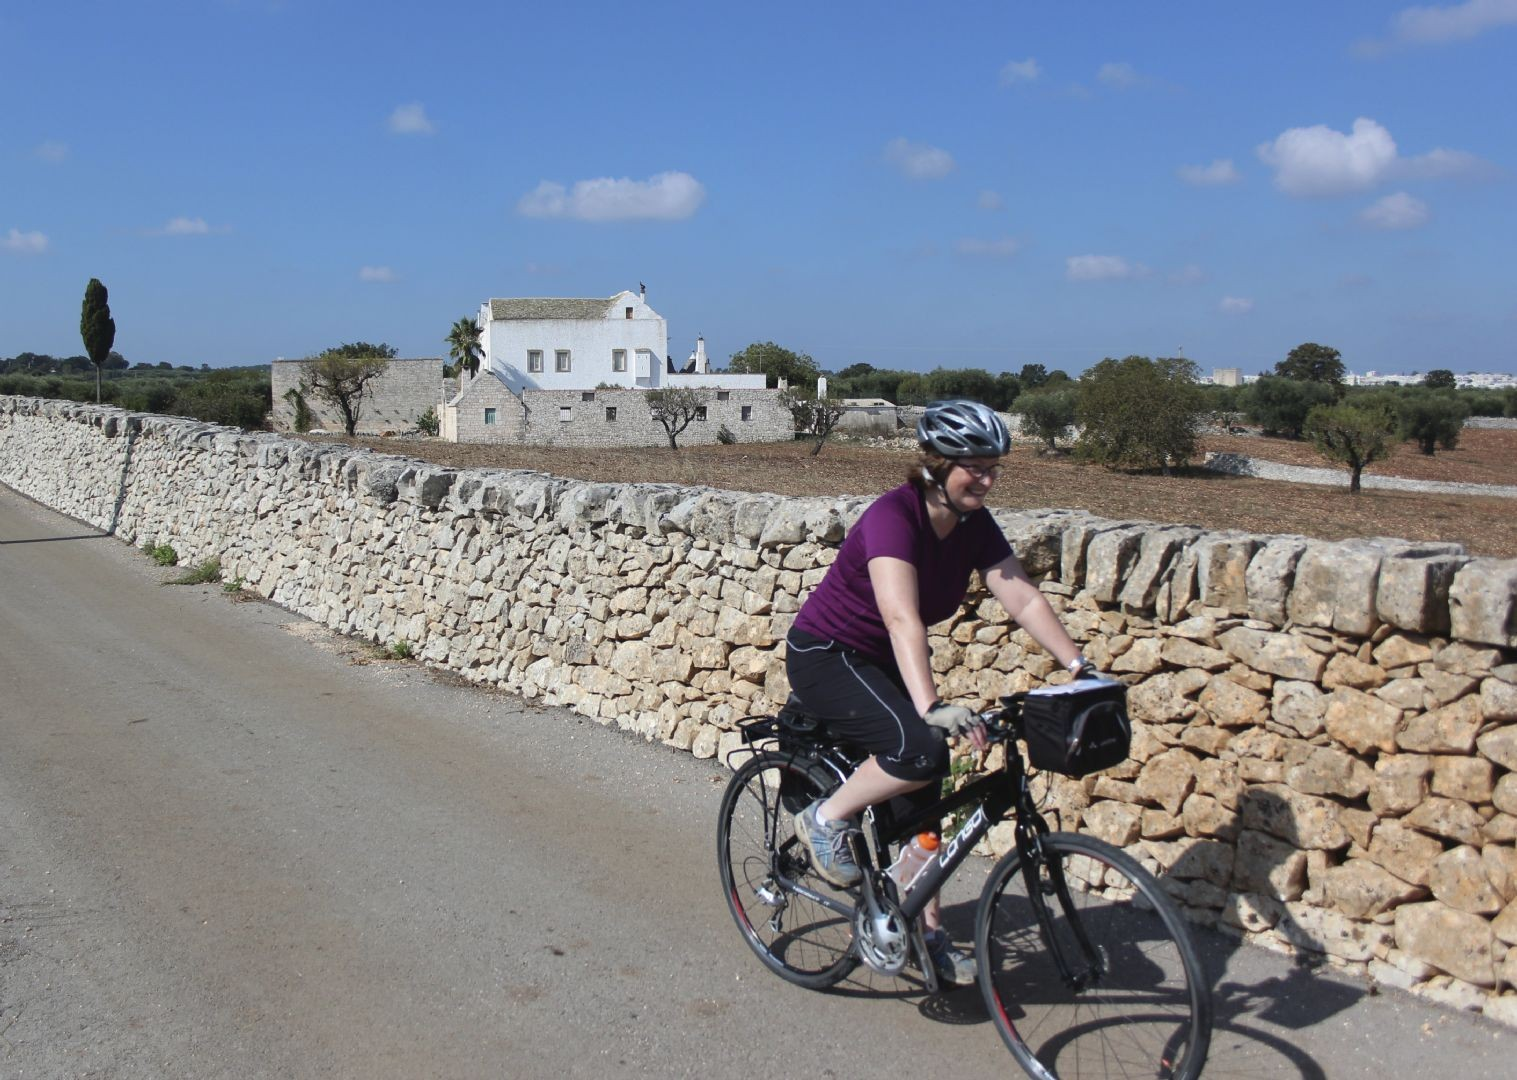 cycling-holiday-puglia-italy.jpg - Italy - Puglia - Leisure Cycling